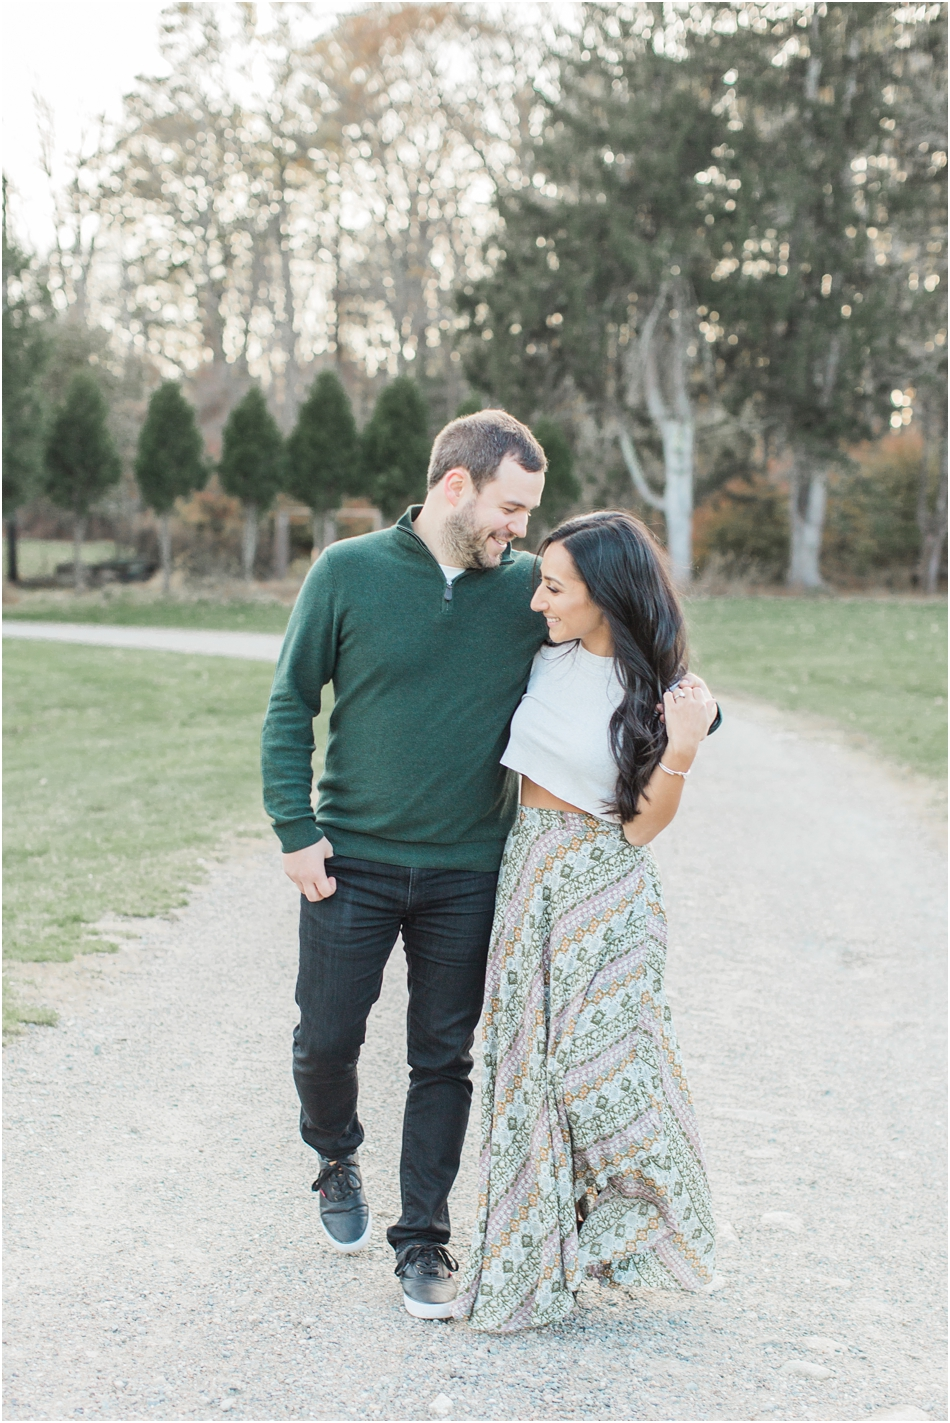 borderland_state_park_engagement_fall_michelle_matt_cape_cod_boston_new_england_wedding_photographer_Meredith_Jane_Photography_photo_0268.jpg